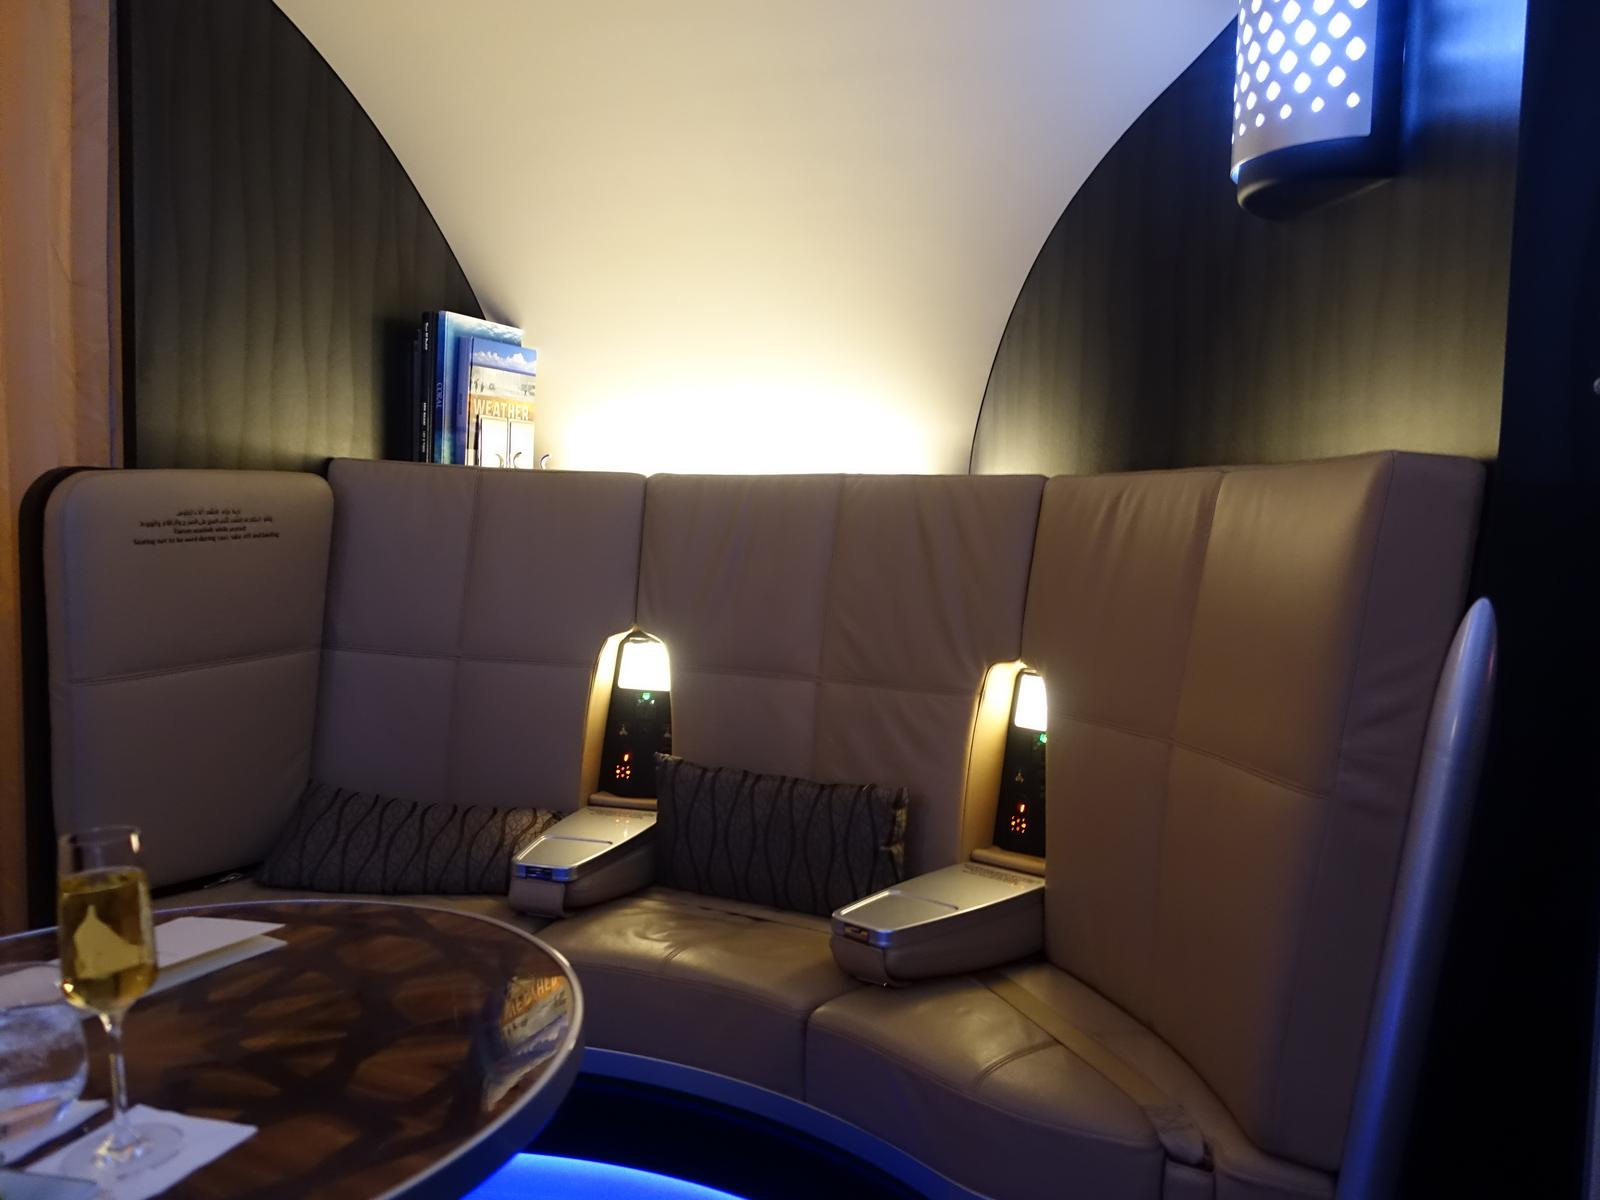 The Onboard Lounge Is A Place Where Restless Business And First Class Passengers Can Go To Socialize Unlike In Qatar Emirates There No Bar